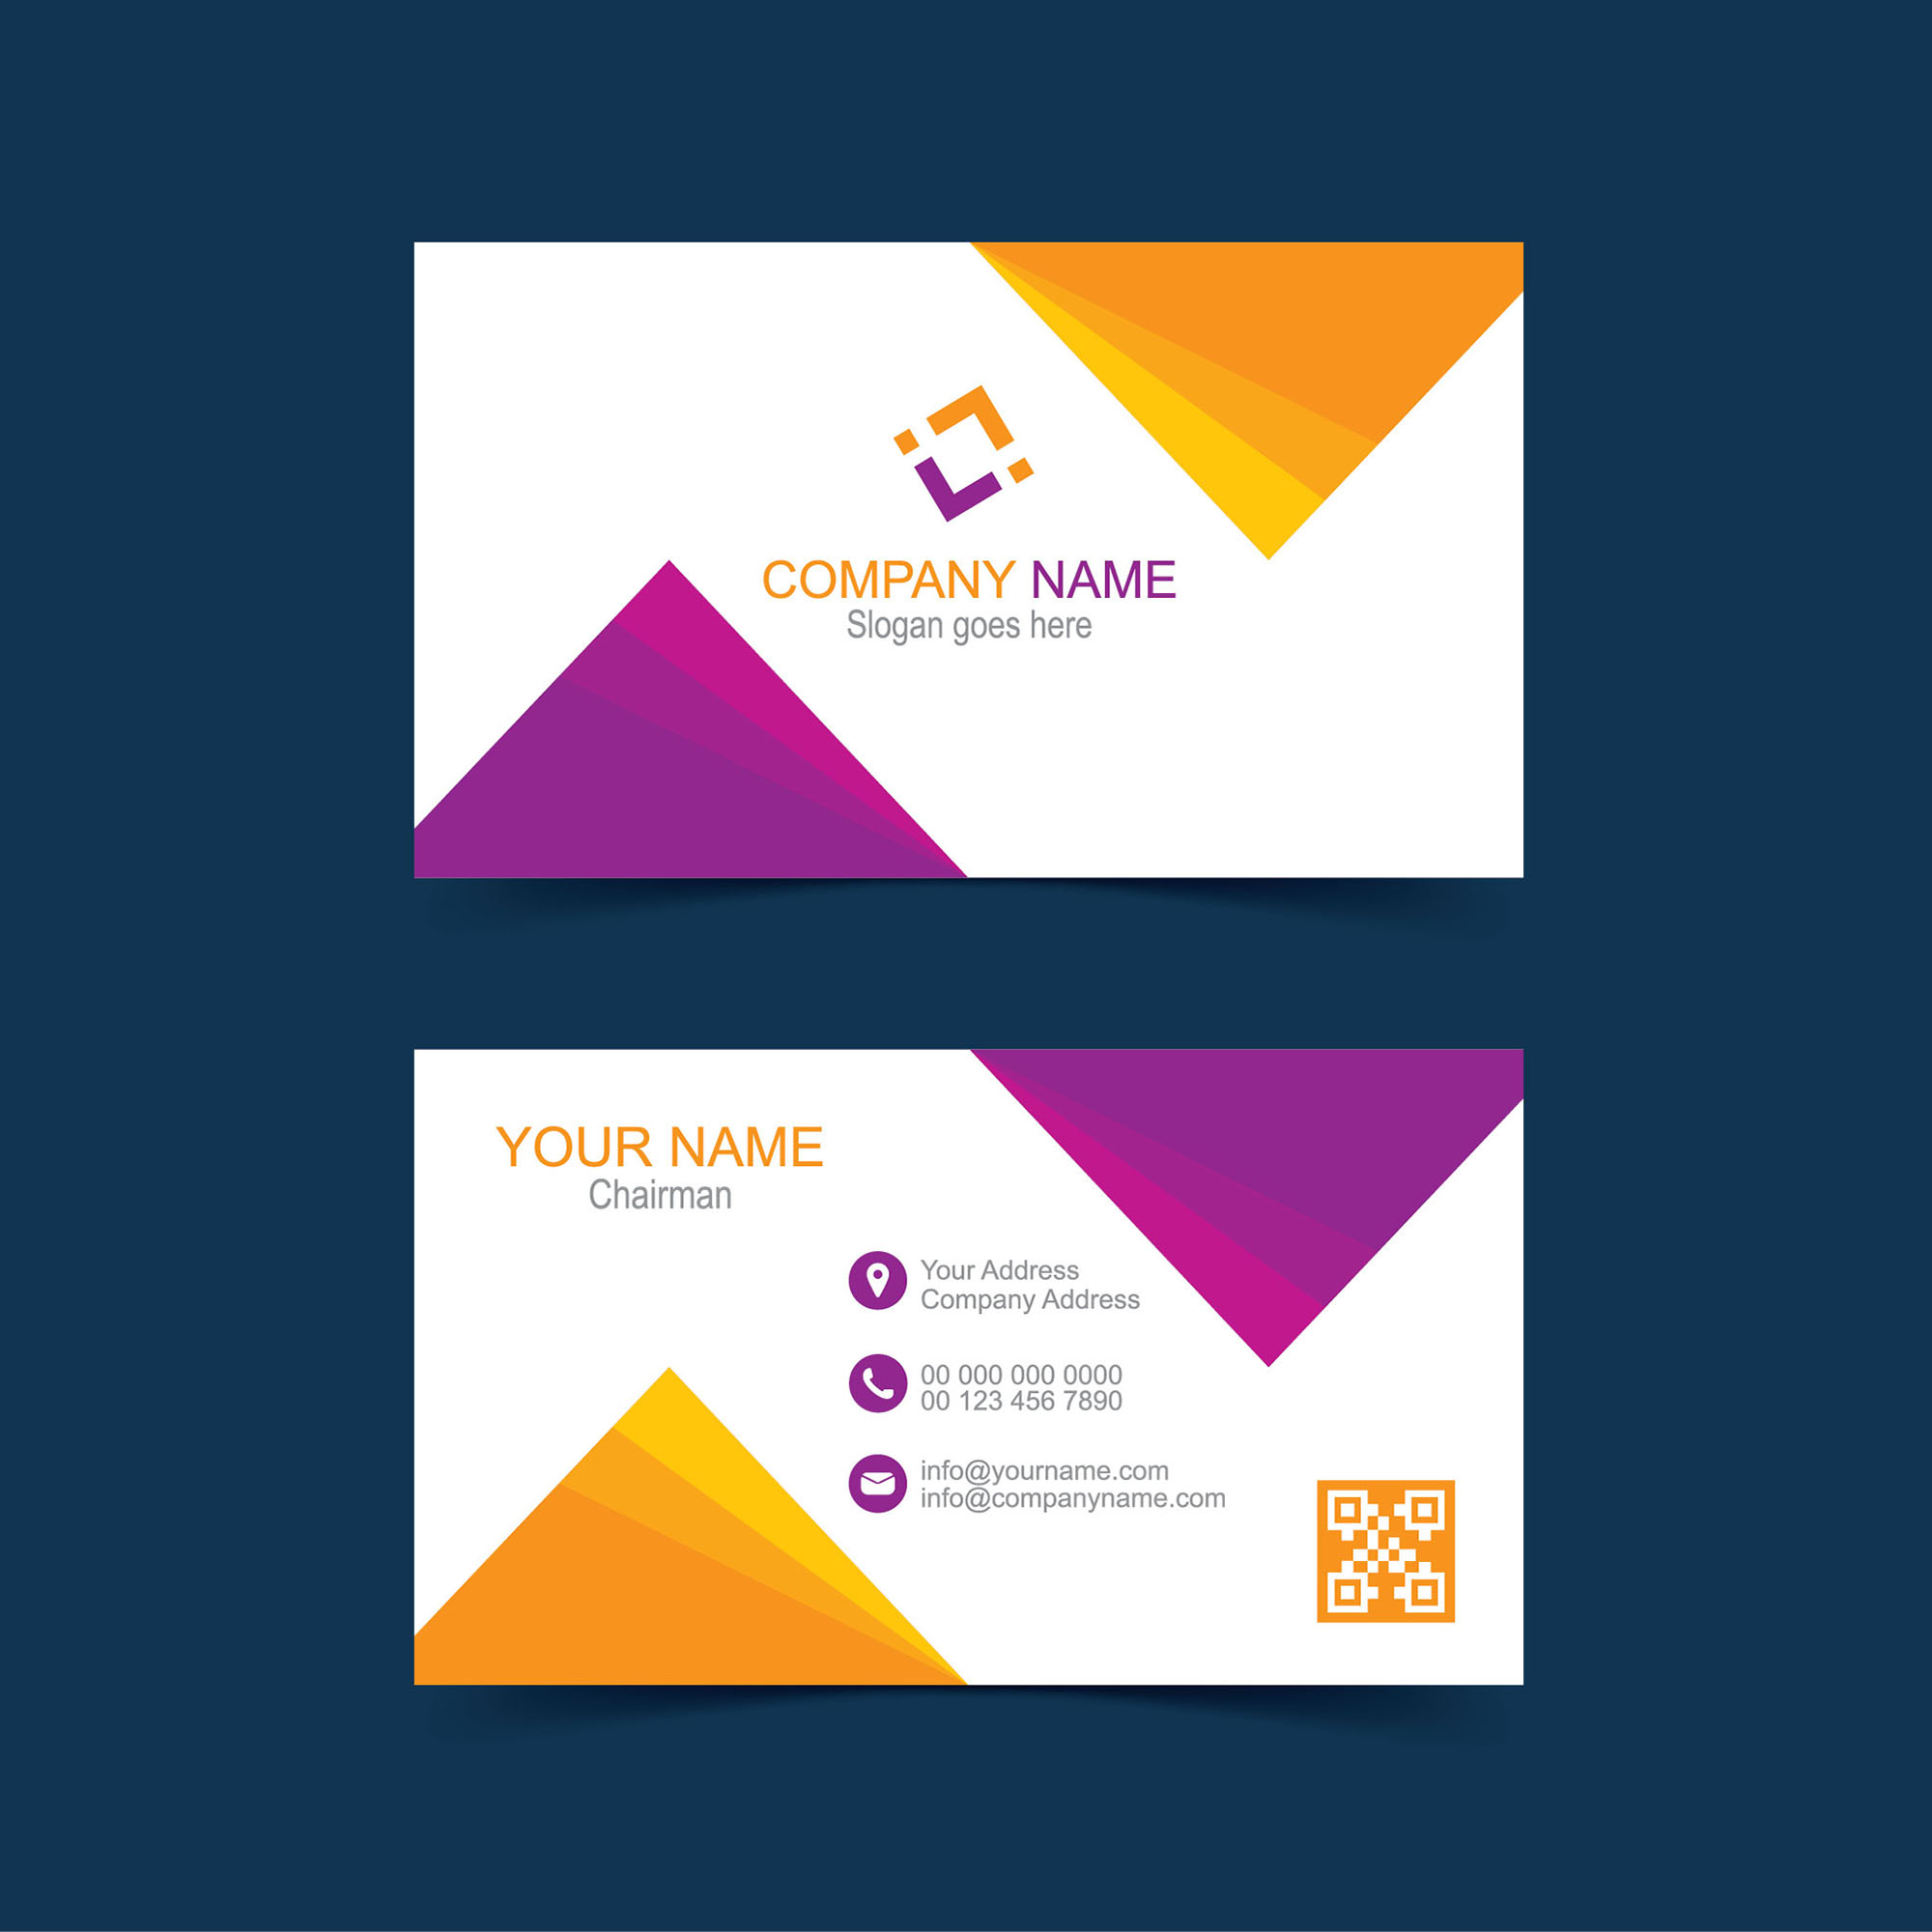 Card design - Business card free download - Wisxi.com